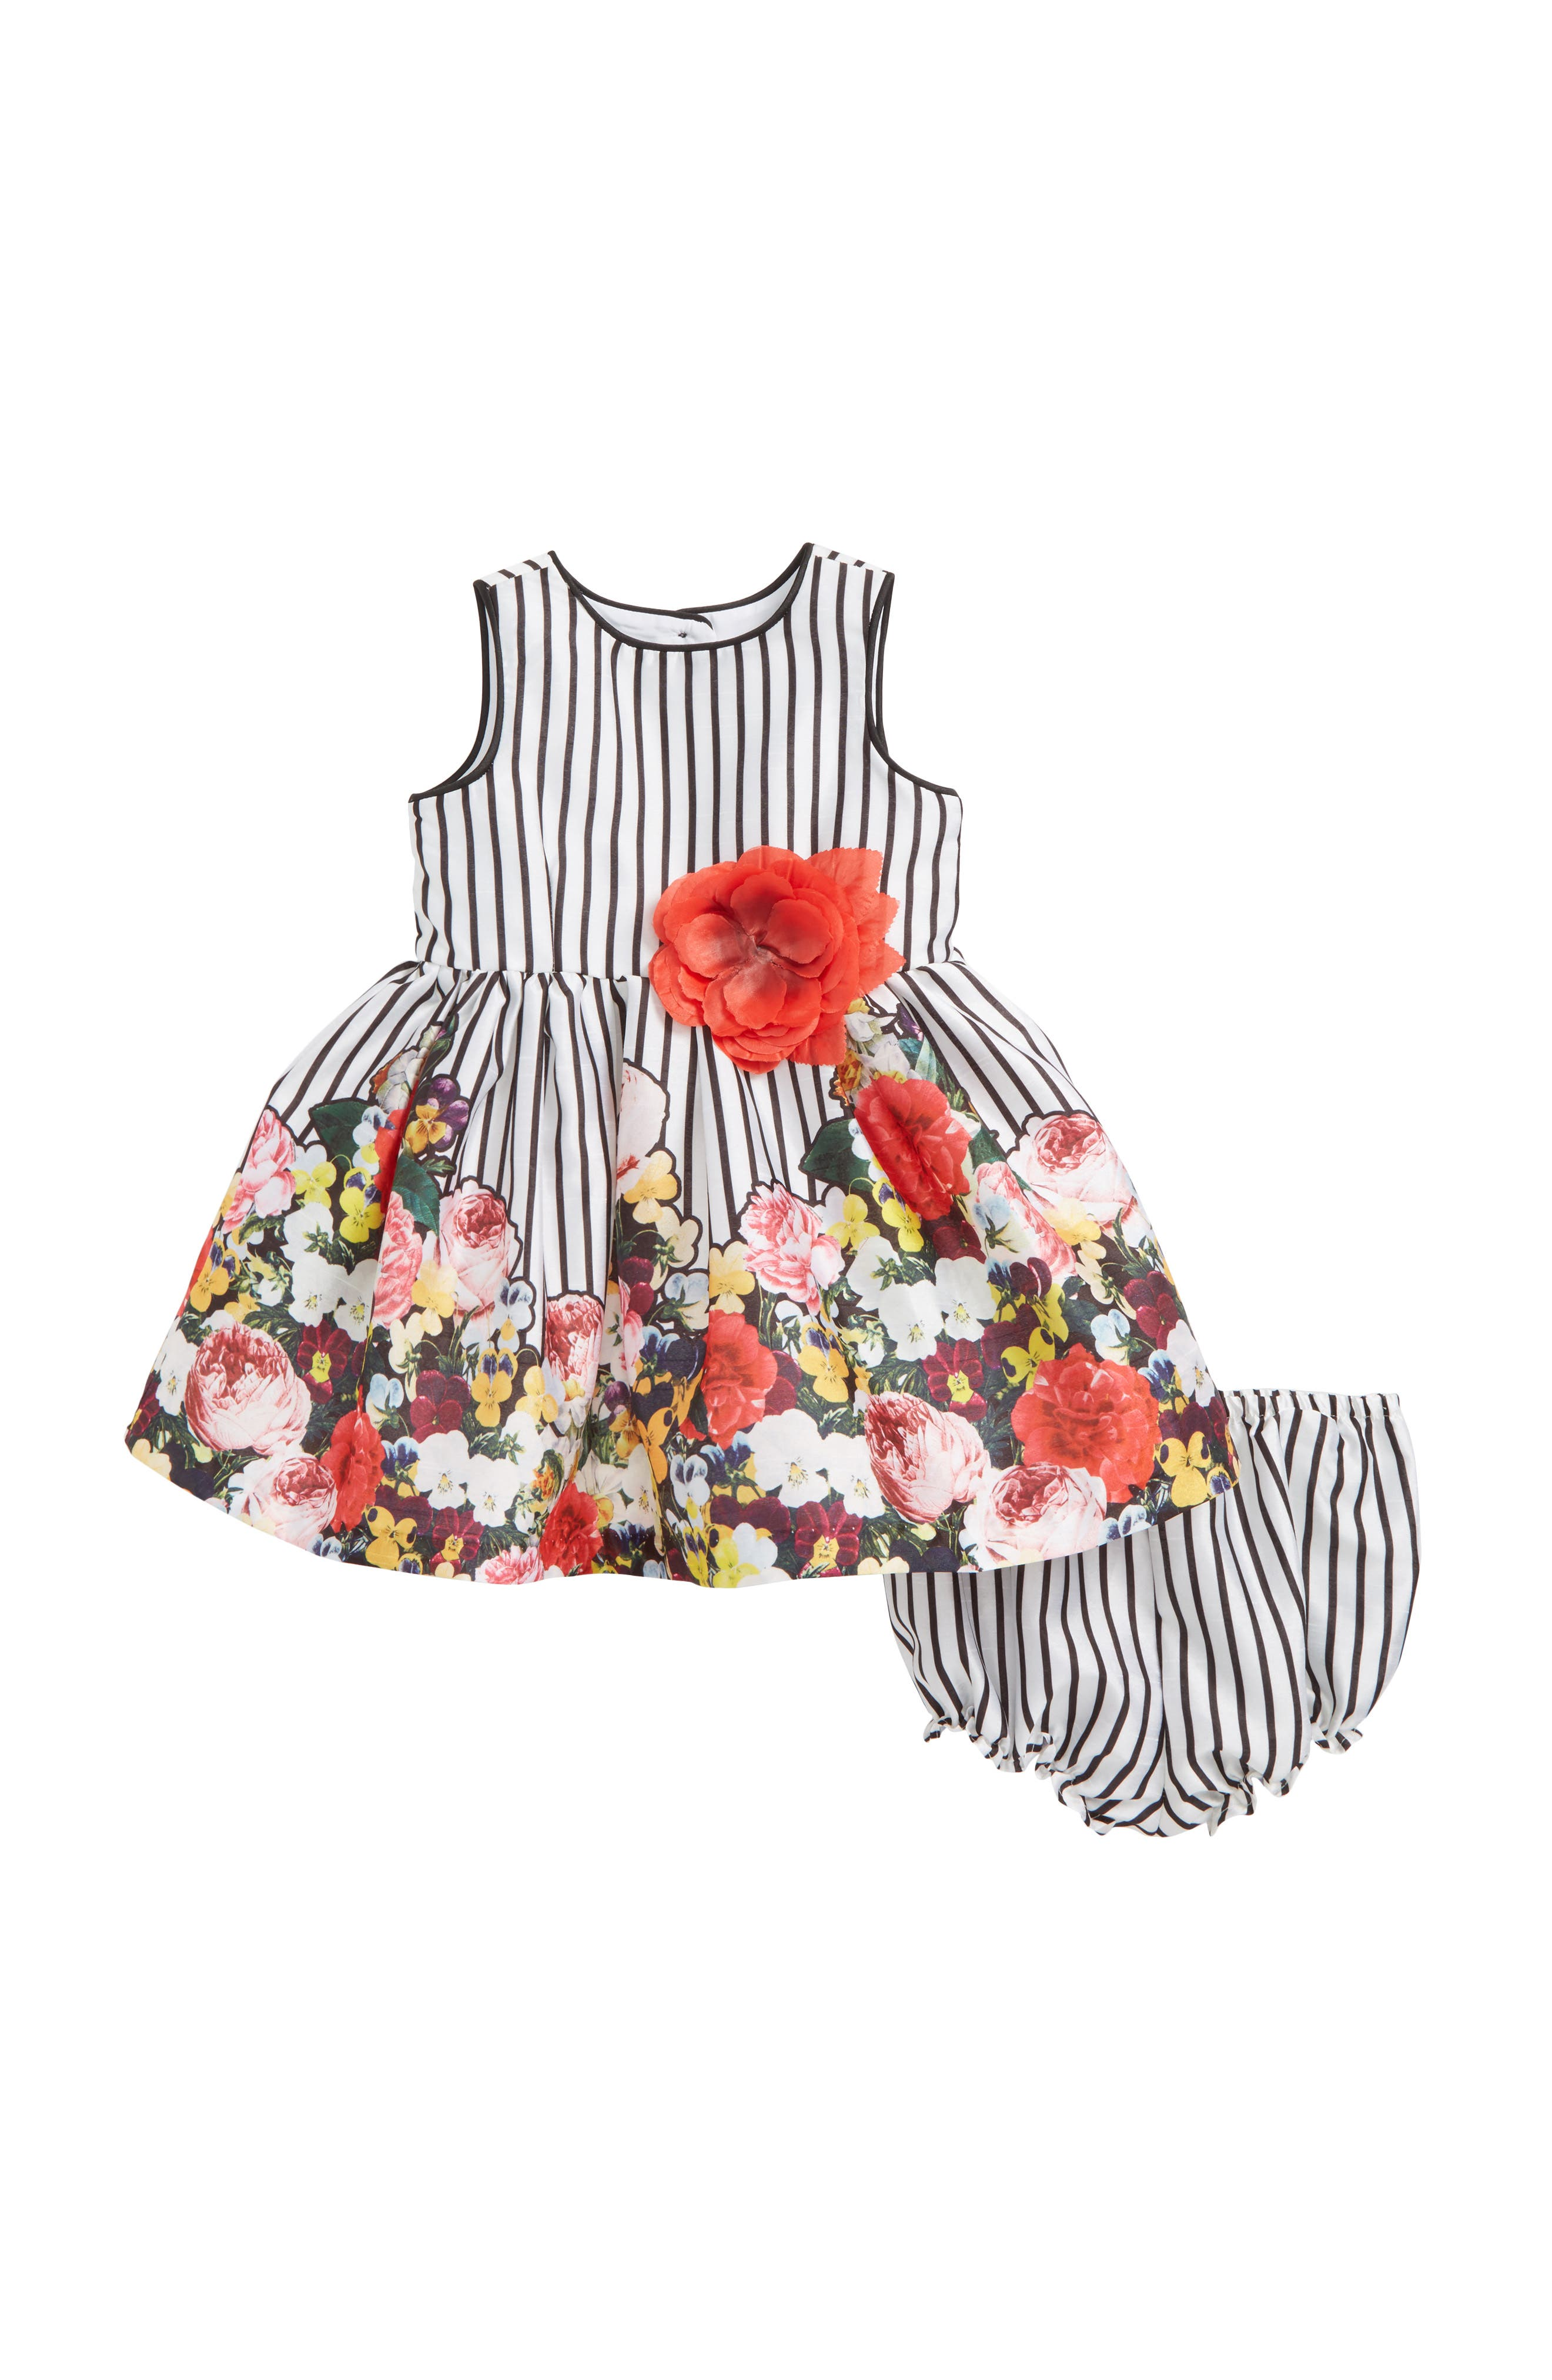 Main Image - Pippa & Julie Stripe Floral Fit & Flare Dress (Baby Girls)